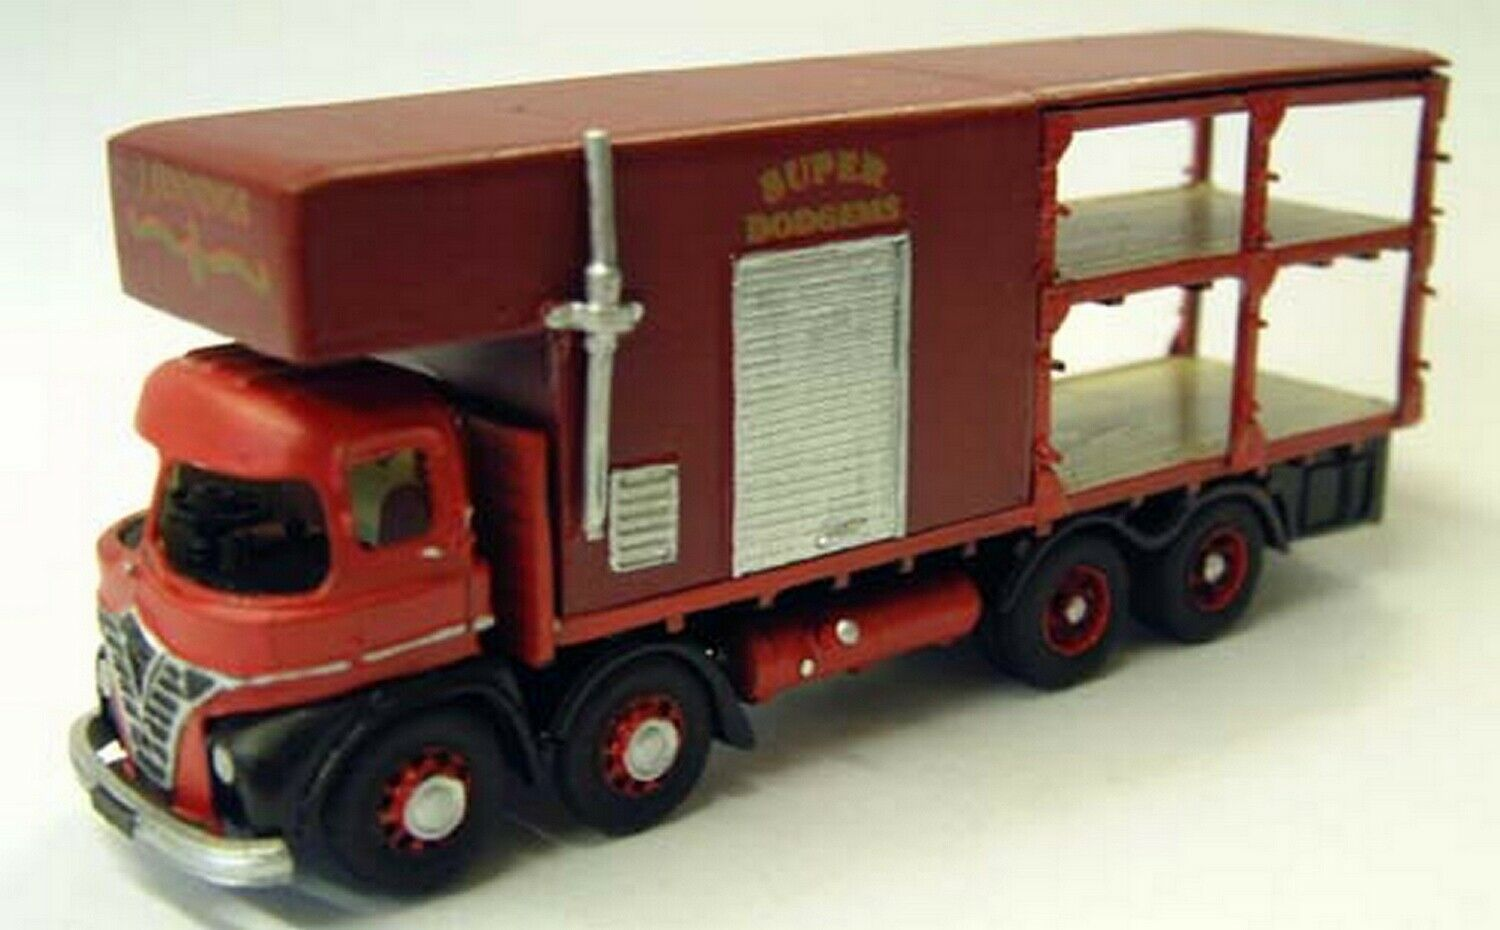 Foden S21 d deck Fairground lorry G105 UNPAINTED OO Scale Langley Models Kit